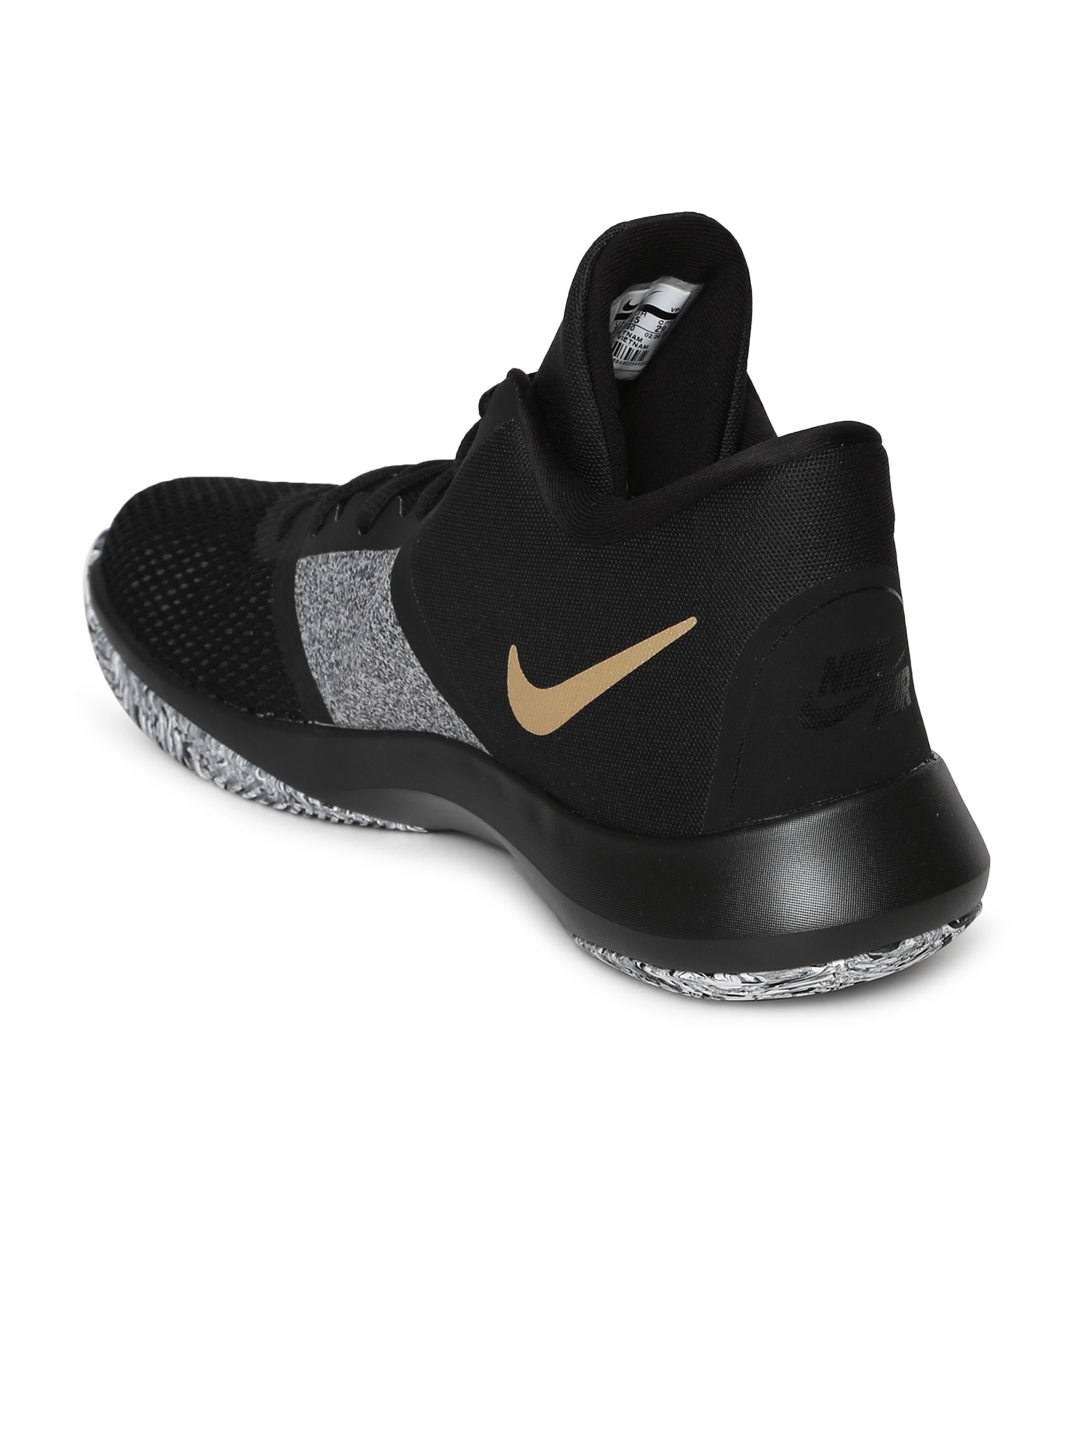 36c2d921d3ed6 Buy Nike Men Black Air Precision II Basketball Shoes - Sports Shoes ...